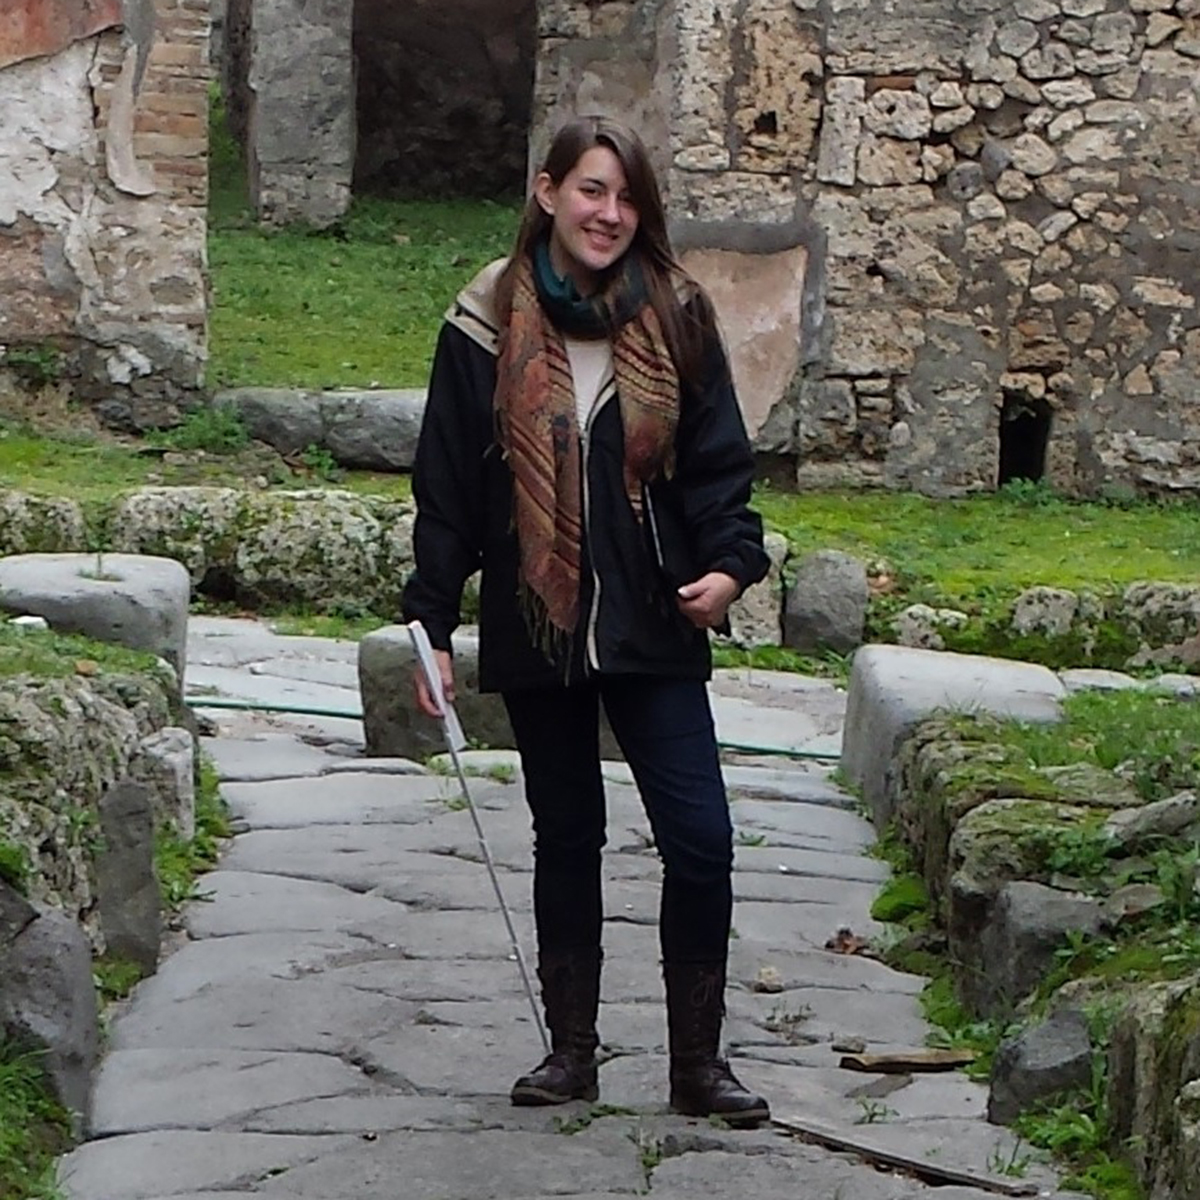 minor dissertations in archaeology All dissertations written by students in the department of anthropology for the  past 12 years  author: melissa minor peters advisor: karen tranberg hansen.